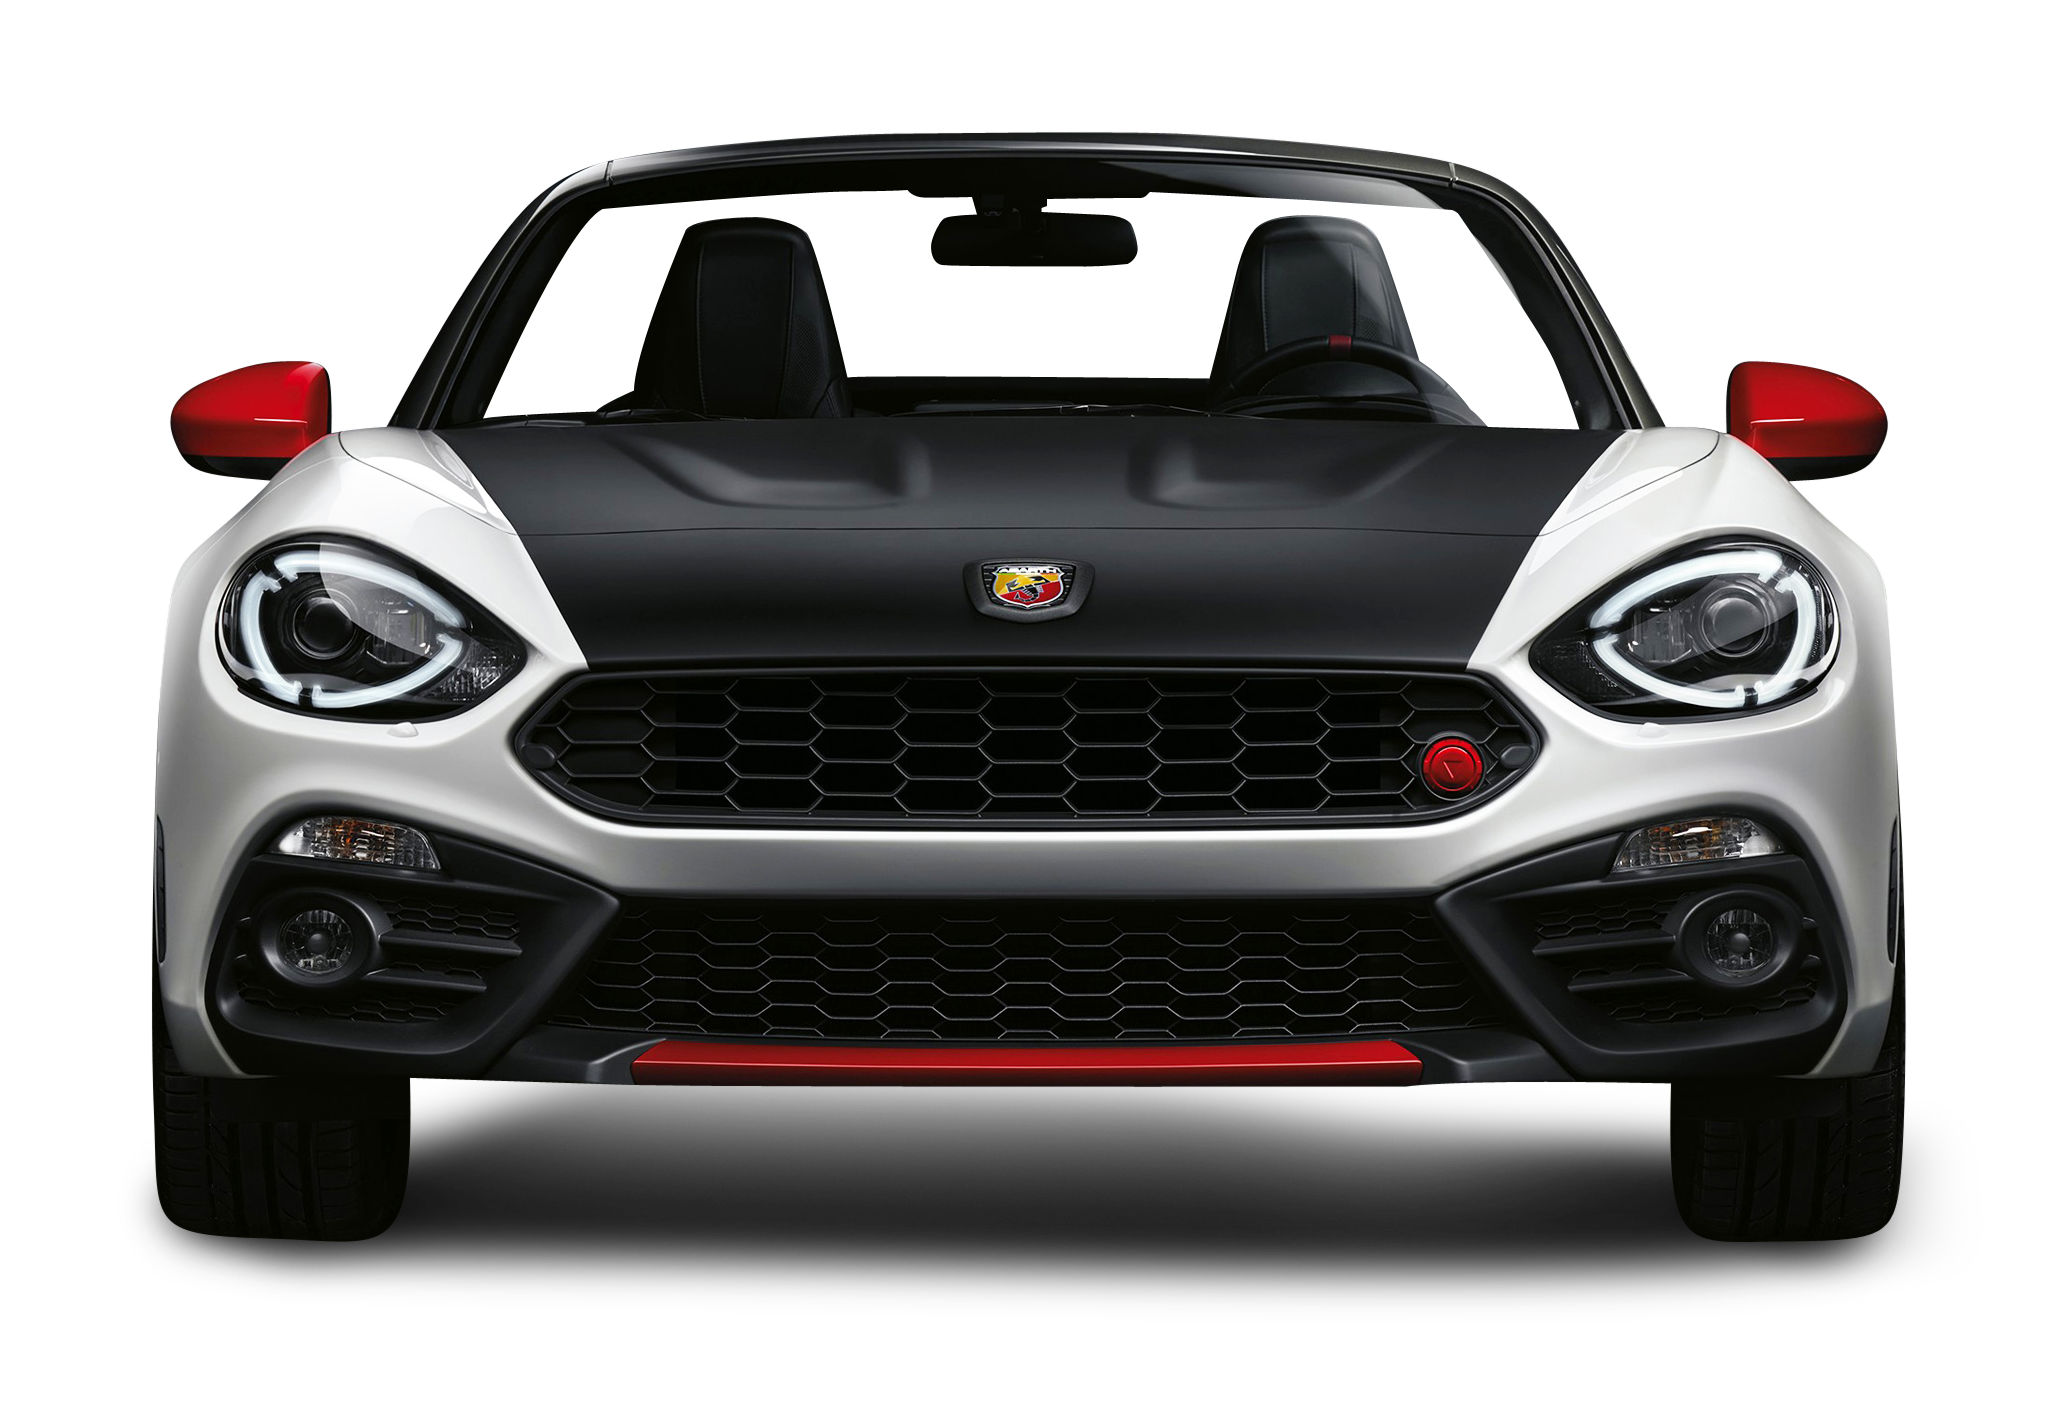 pngpix-com-black-and-white-fiat-124-spider-abarth-front-view-car-png-image